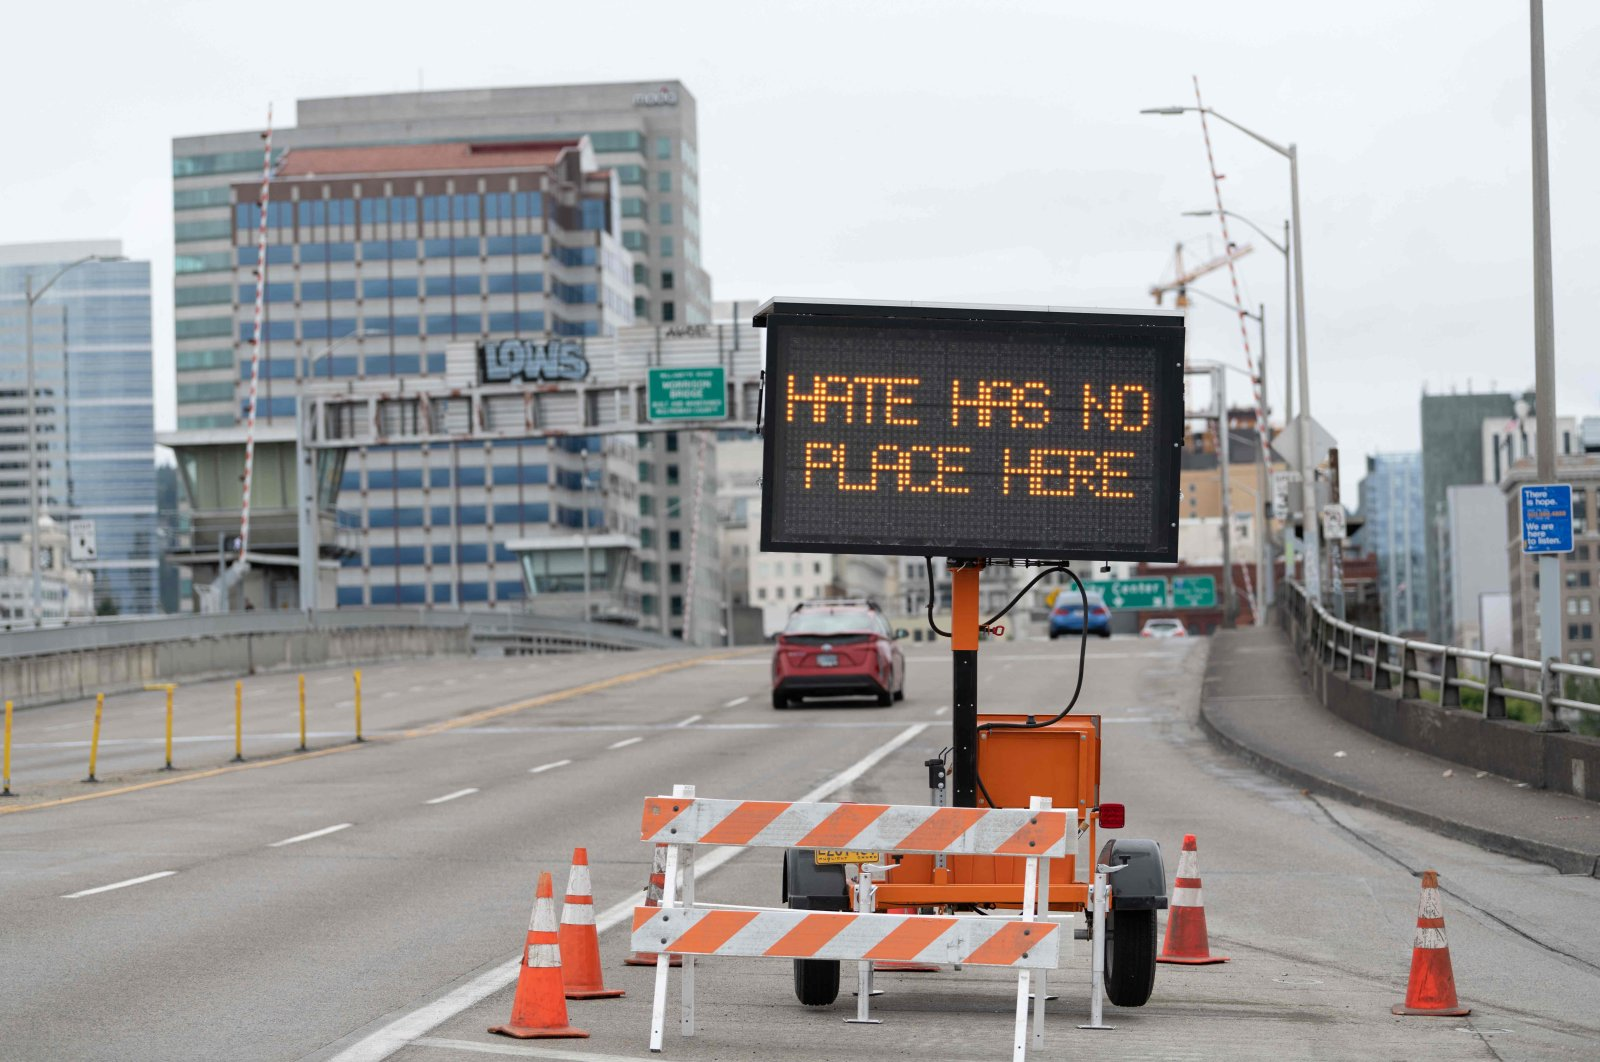 A traffic sign displays a message on the Morrison Bridge ahead of opposing rallies between far-right groups and anti-fascist activists in Portland, Oregon, U.S., Aug. 22, 2021. (AFP Photo)